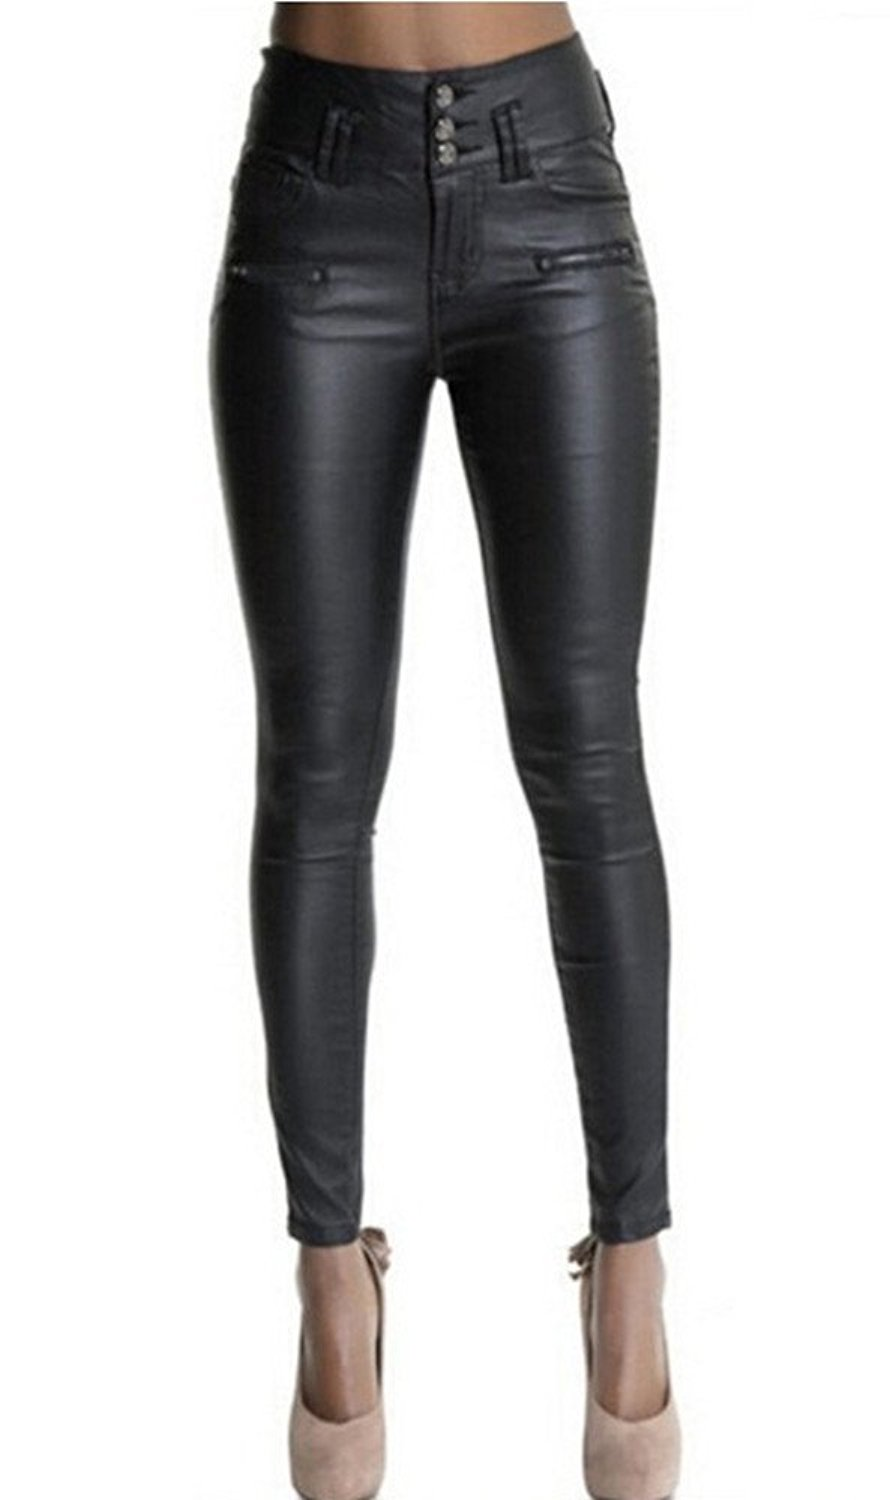 853bb1b60f Get Quotations · Gemijack Womens Faux Leather Leggings Pants Sexy High  Waisted Stretchy Black Tights